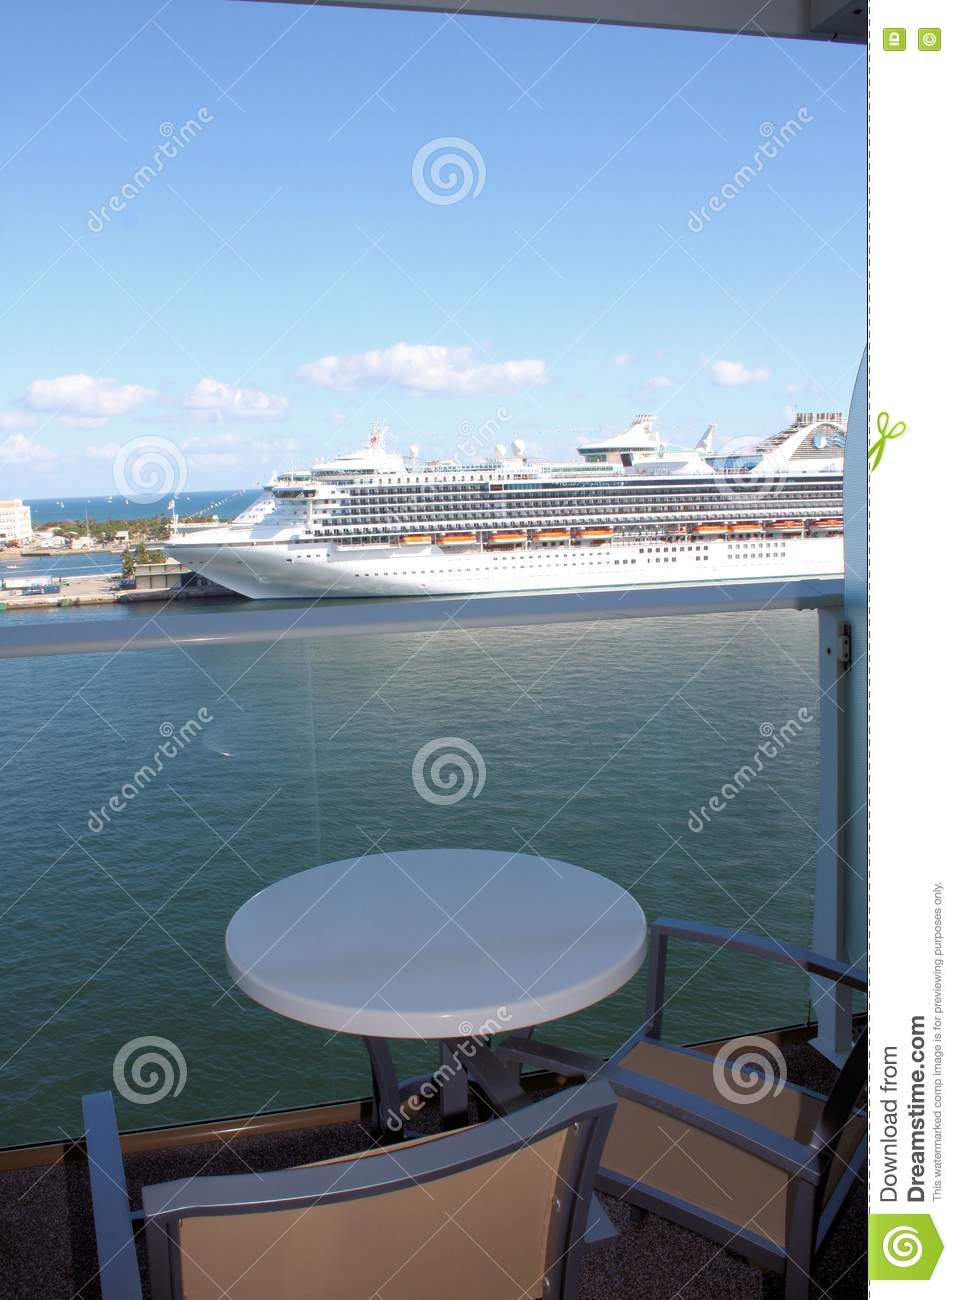 Oasis of the seas cruise ship balcony stock images image for Cruise ship balcony view